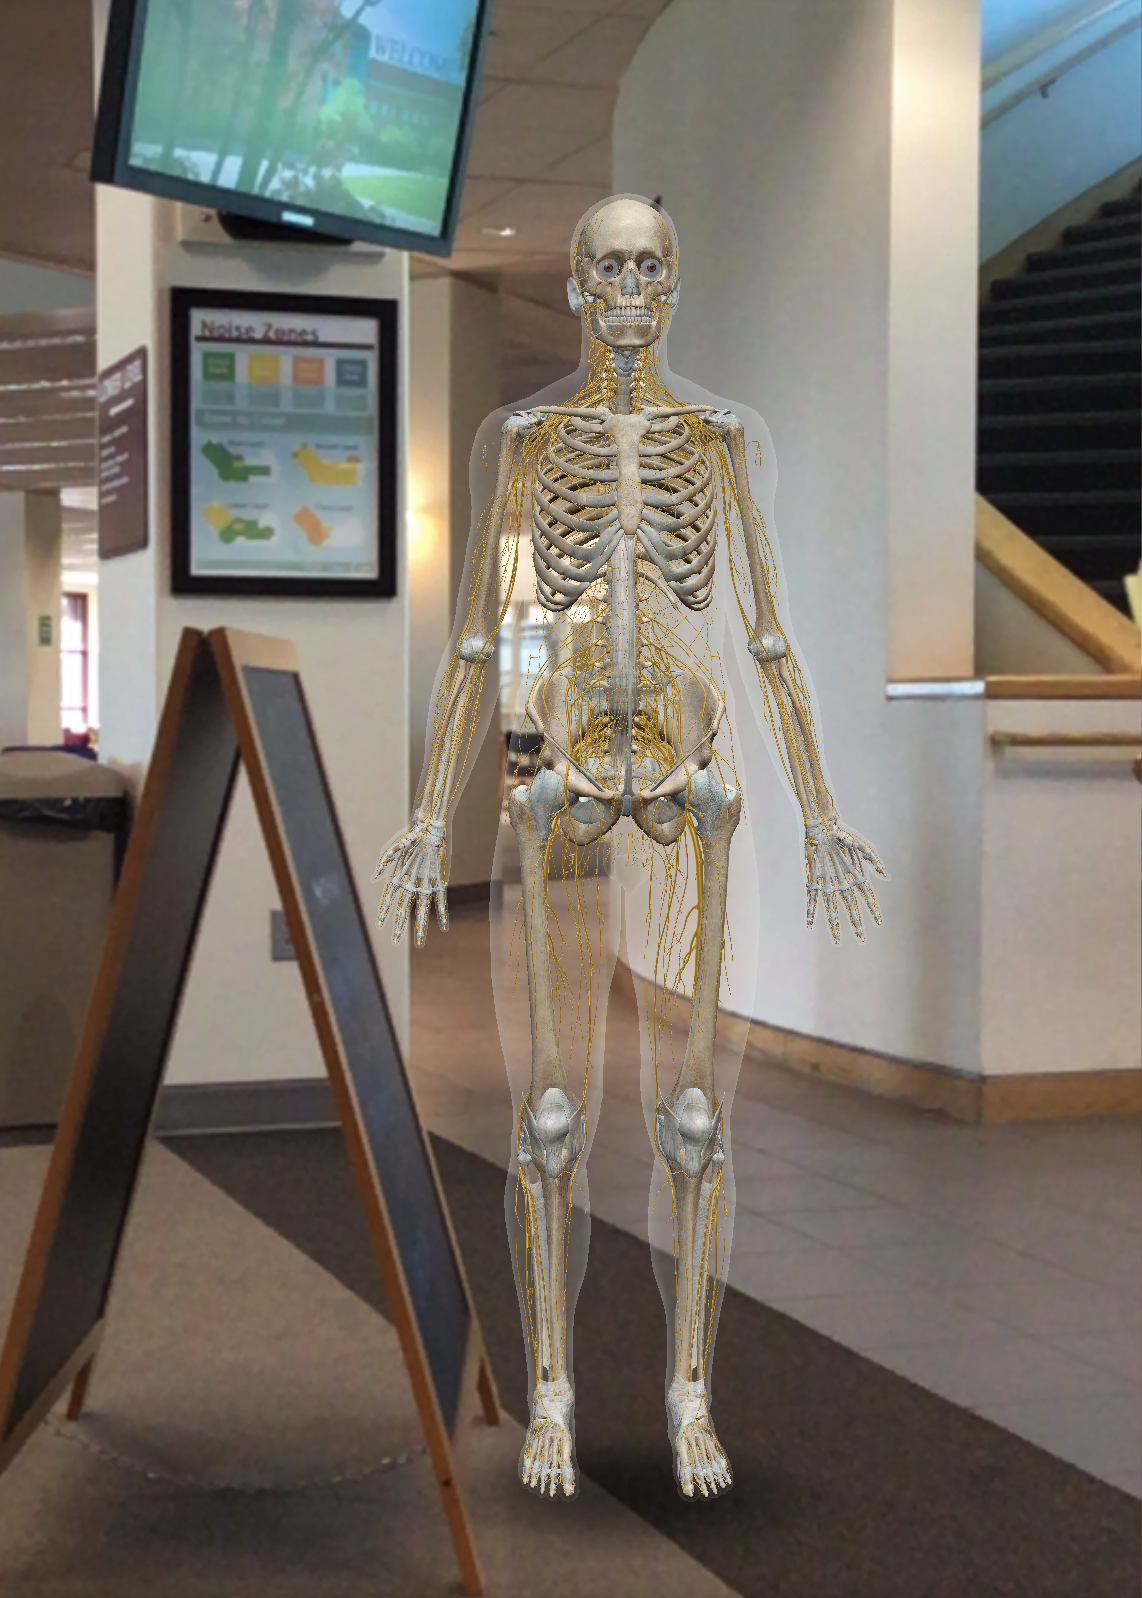 Augmented reality skeleton standing near the stairwell in Foley Library